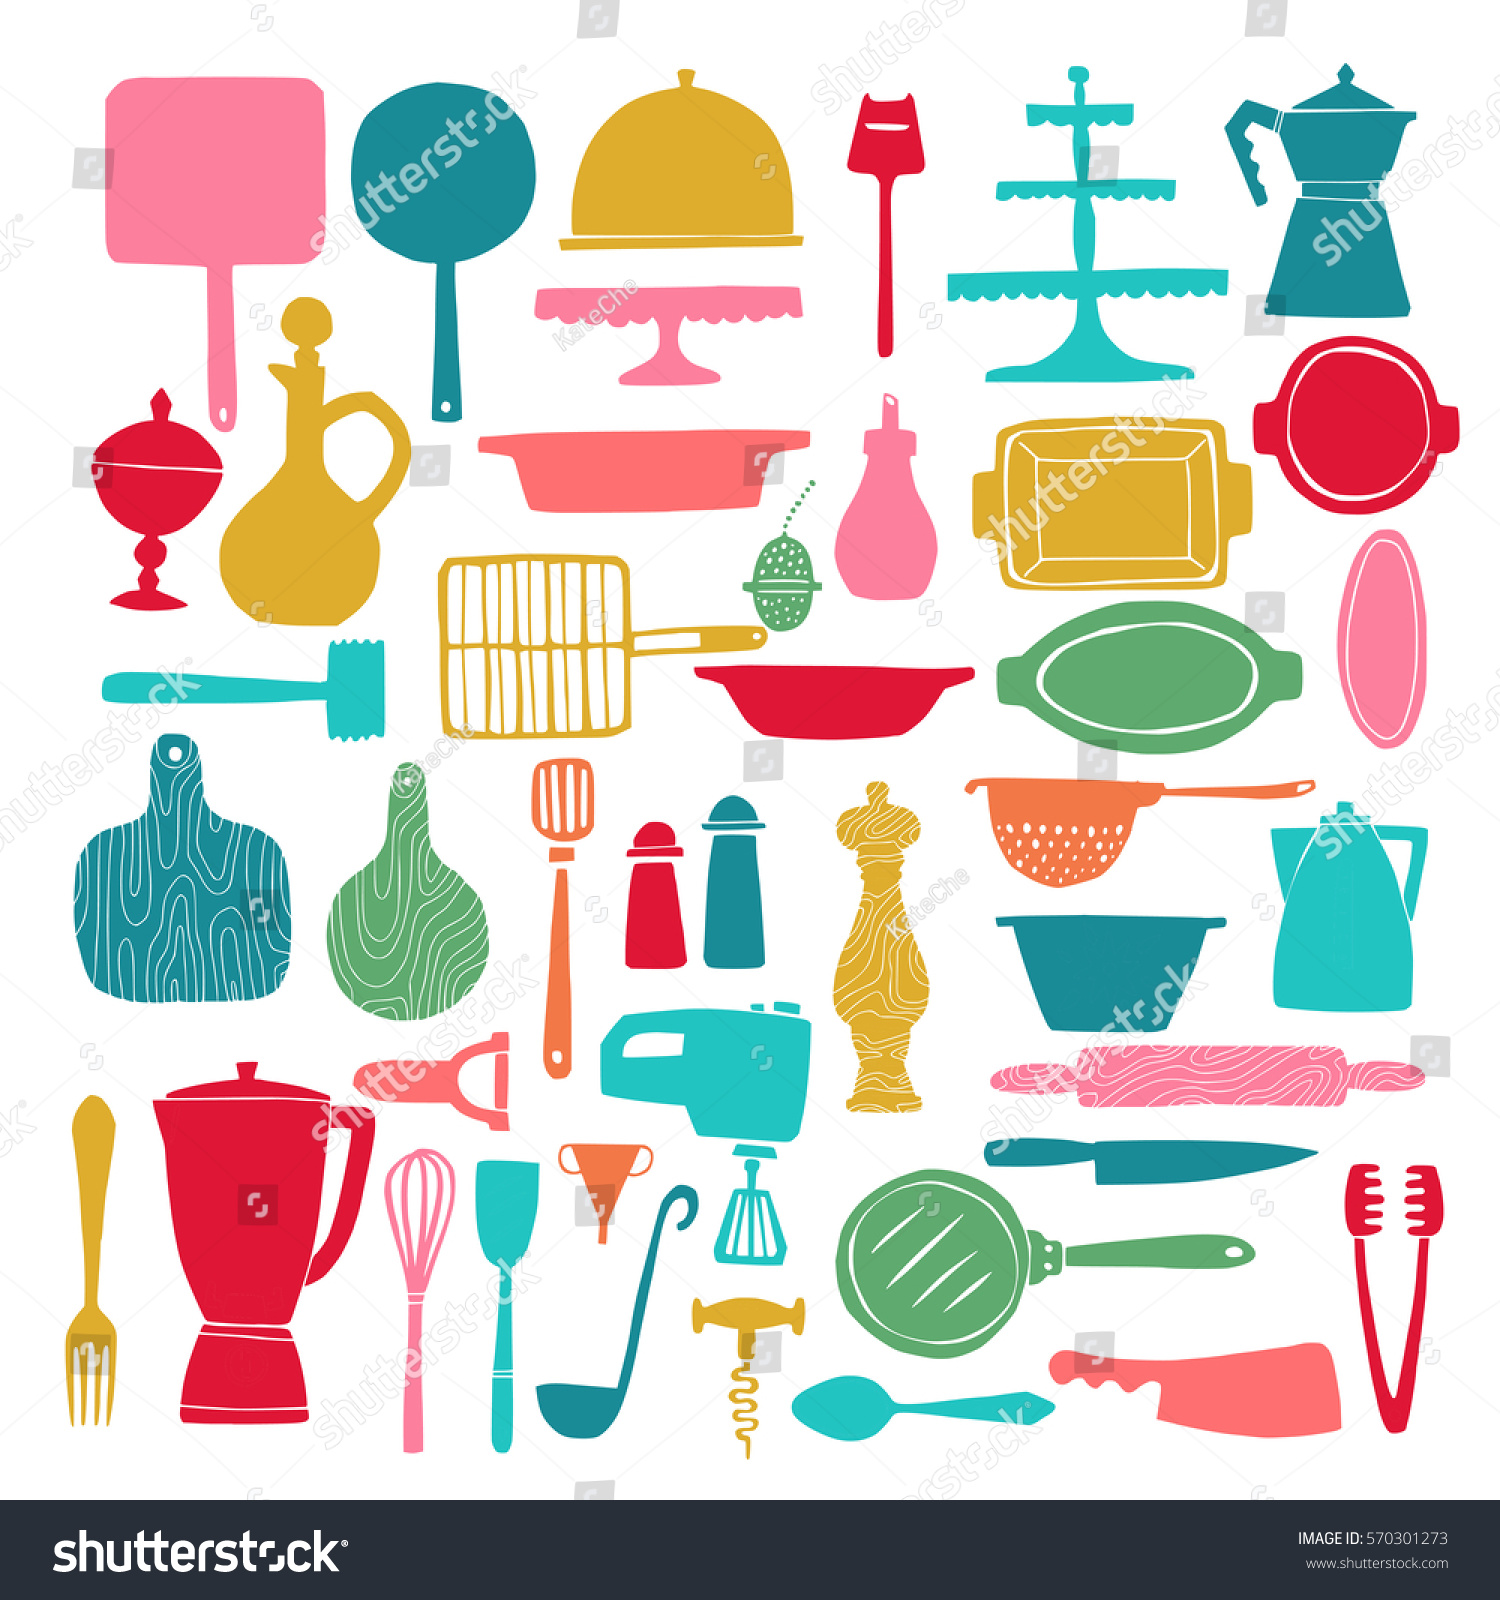 Big set of silhouettes of kitchenware and utensils in hand drawn quirky  trendy style. Isolated